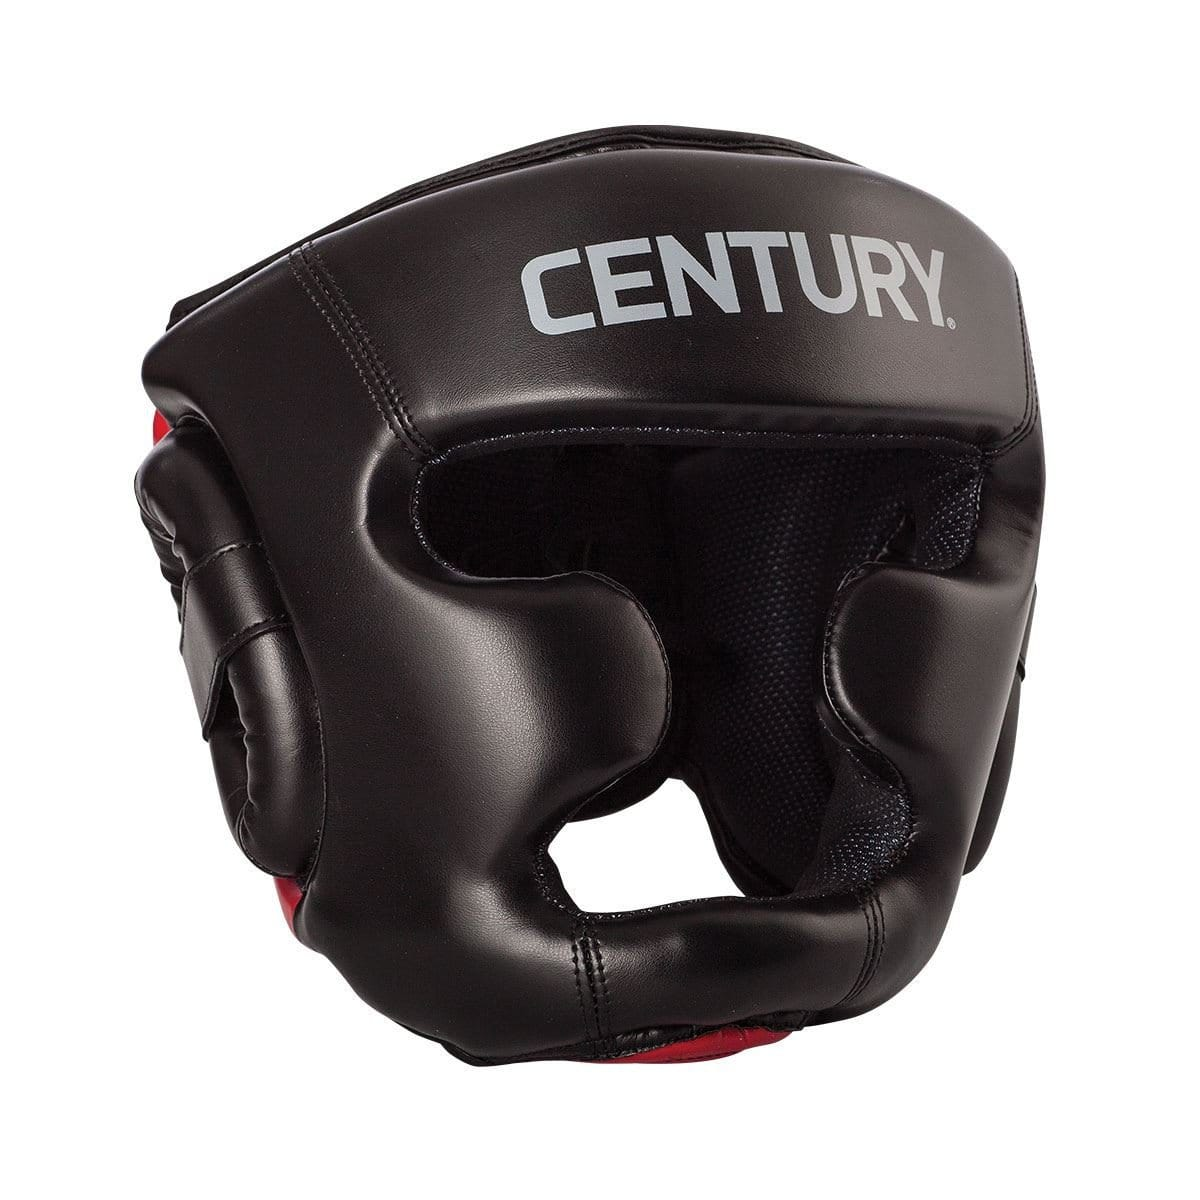 Century Drive Full Face Headgear c141007p